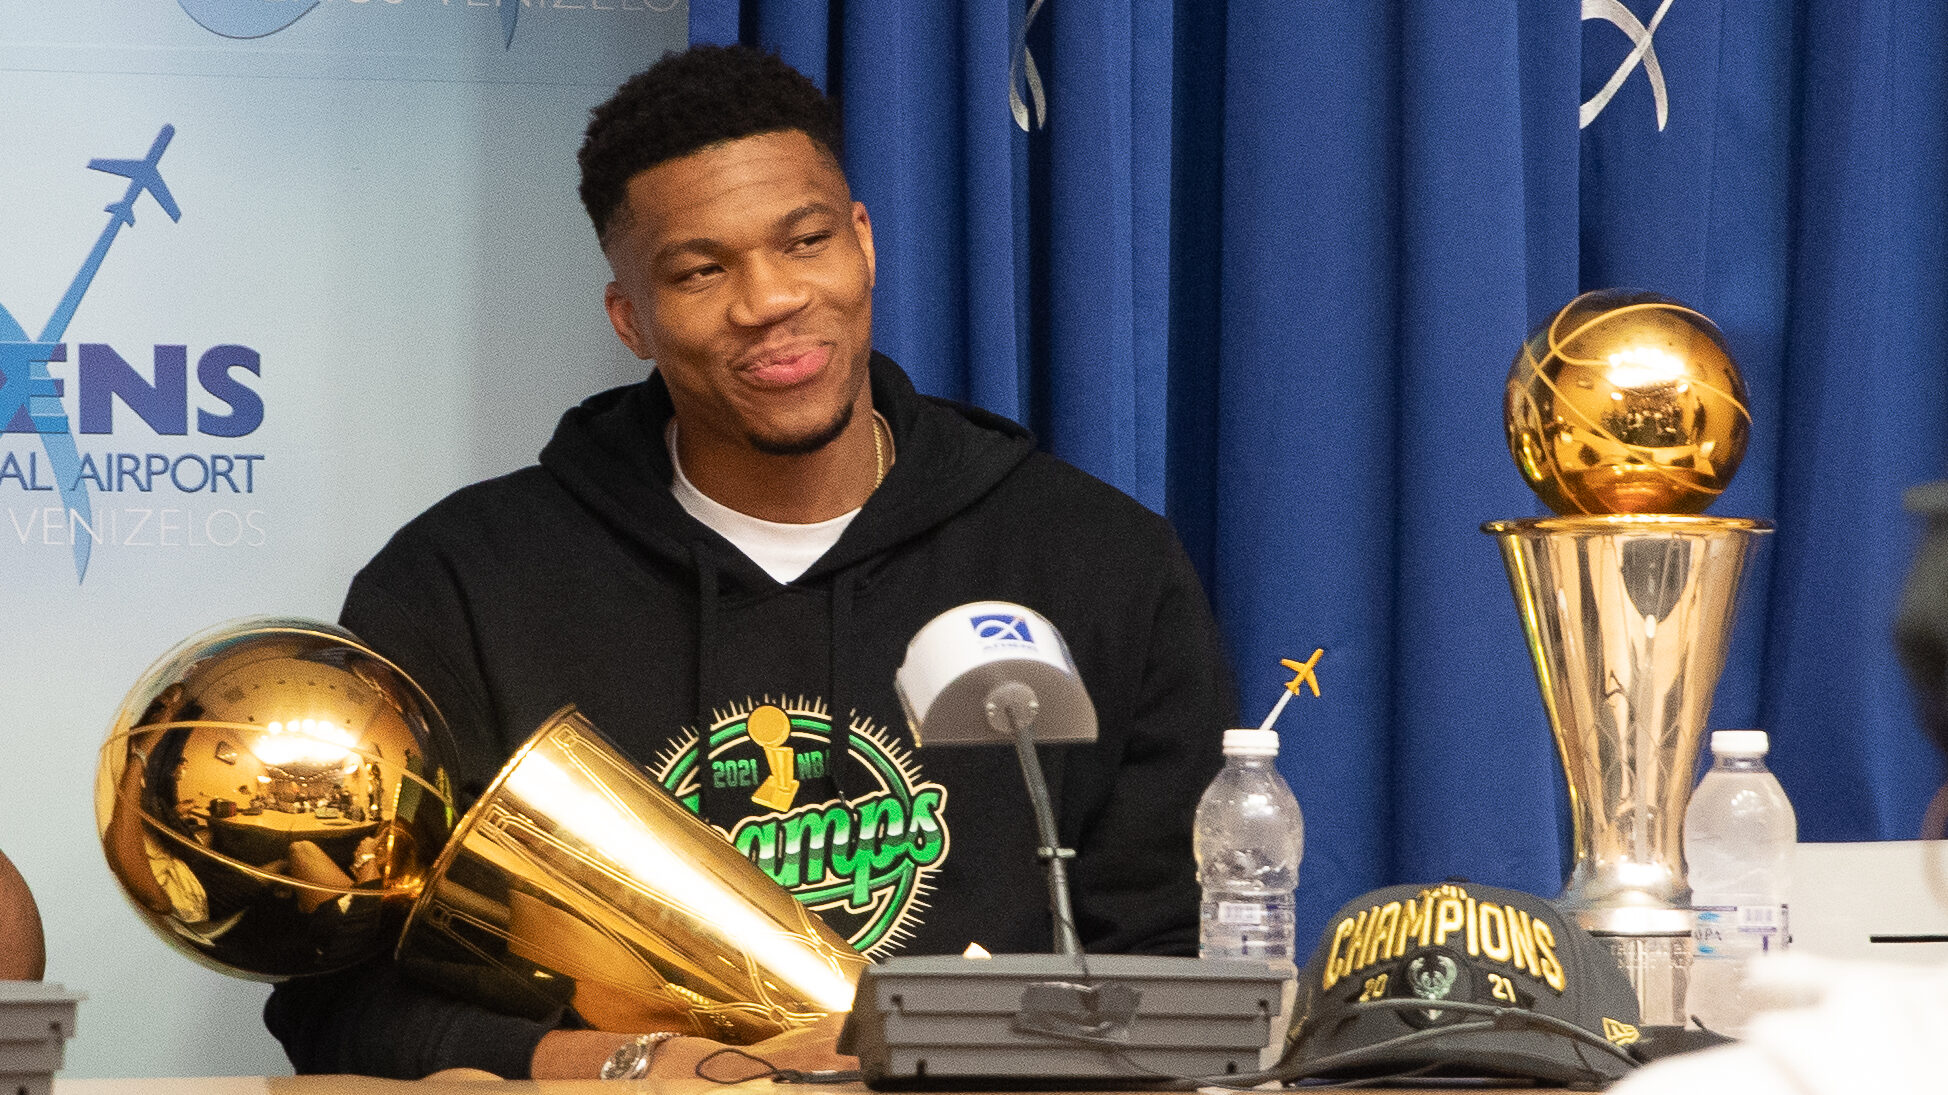 Antetokounmpo returns to Greece, with trophies in tow